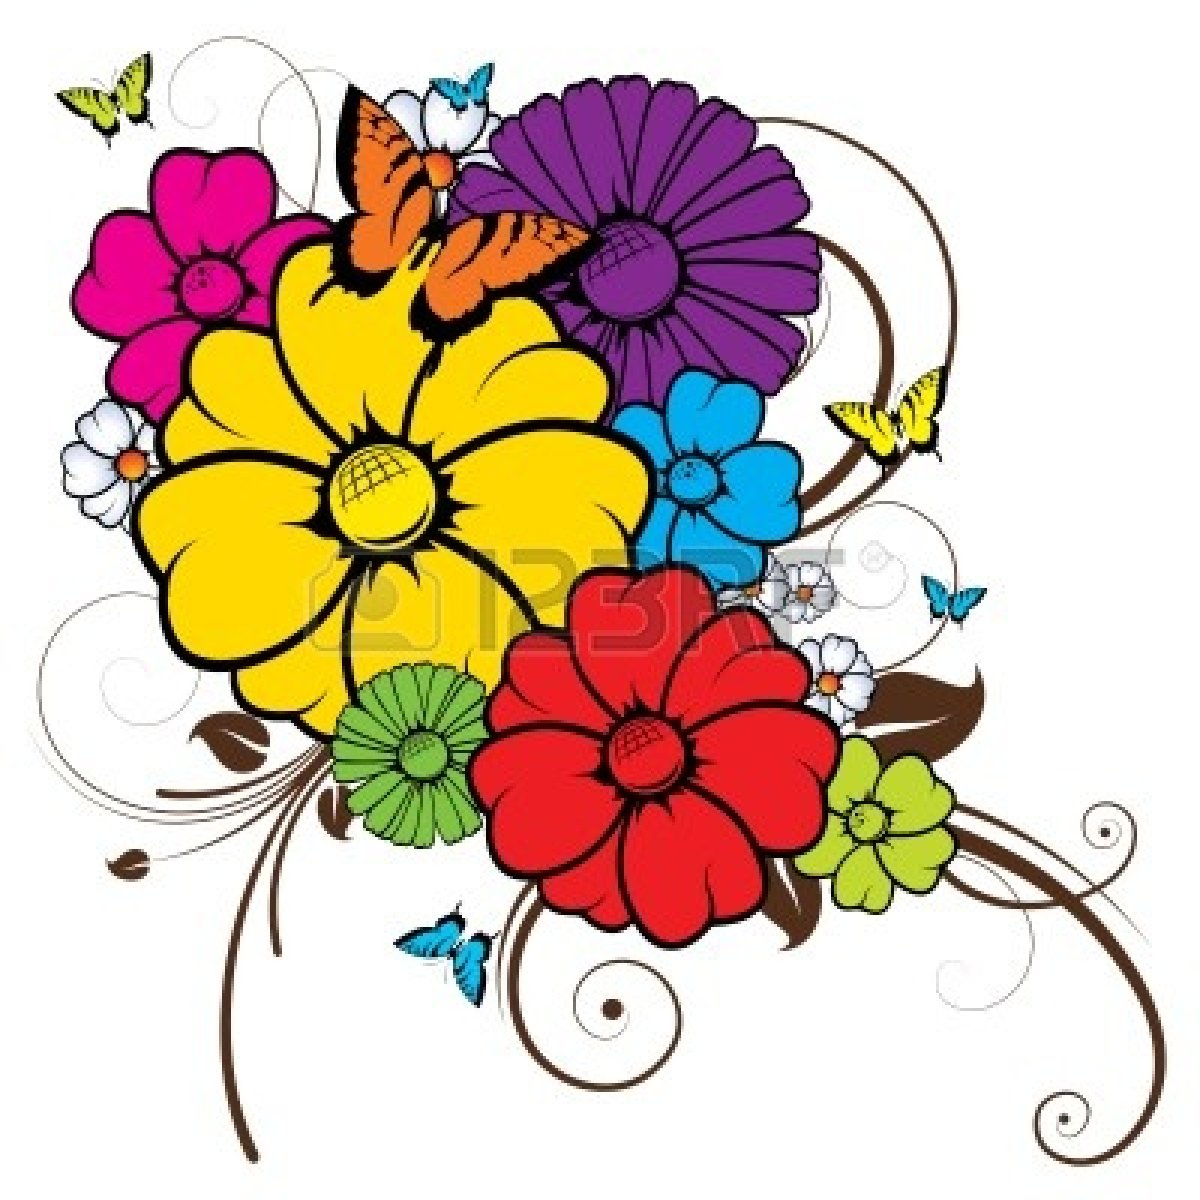 Free clipart of flowers and butterflies picture library library Free Flowers And Butterflies Clipart, Download Free Clip Art, Free ... picture library library